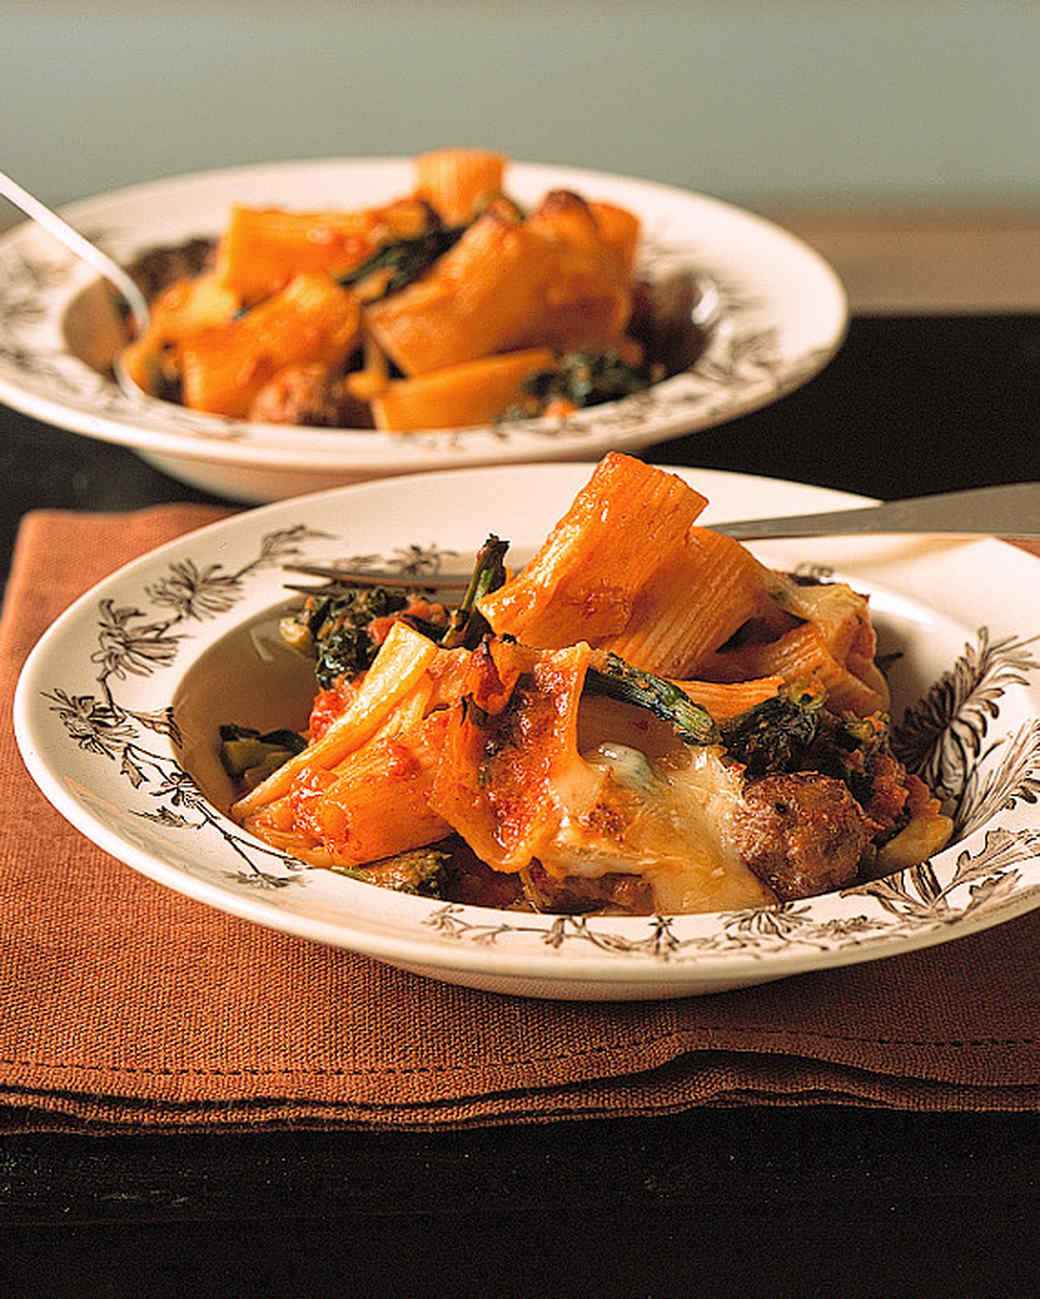 baked rigatoni with sausage meatballs and broccoli rabe